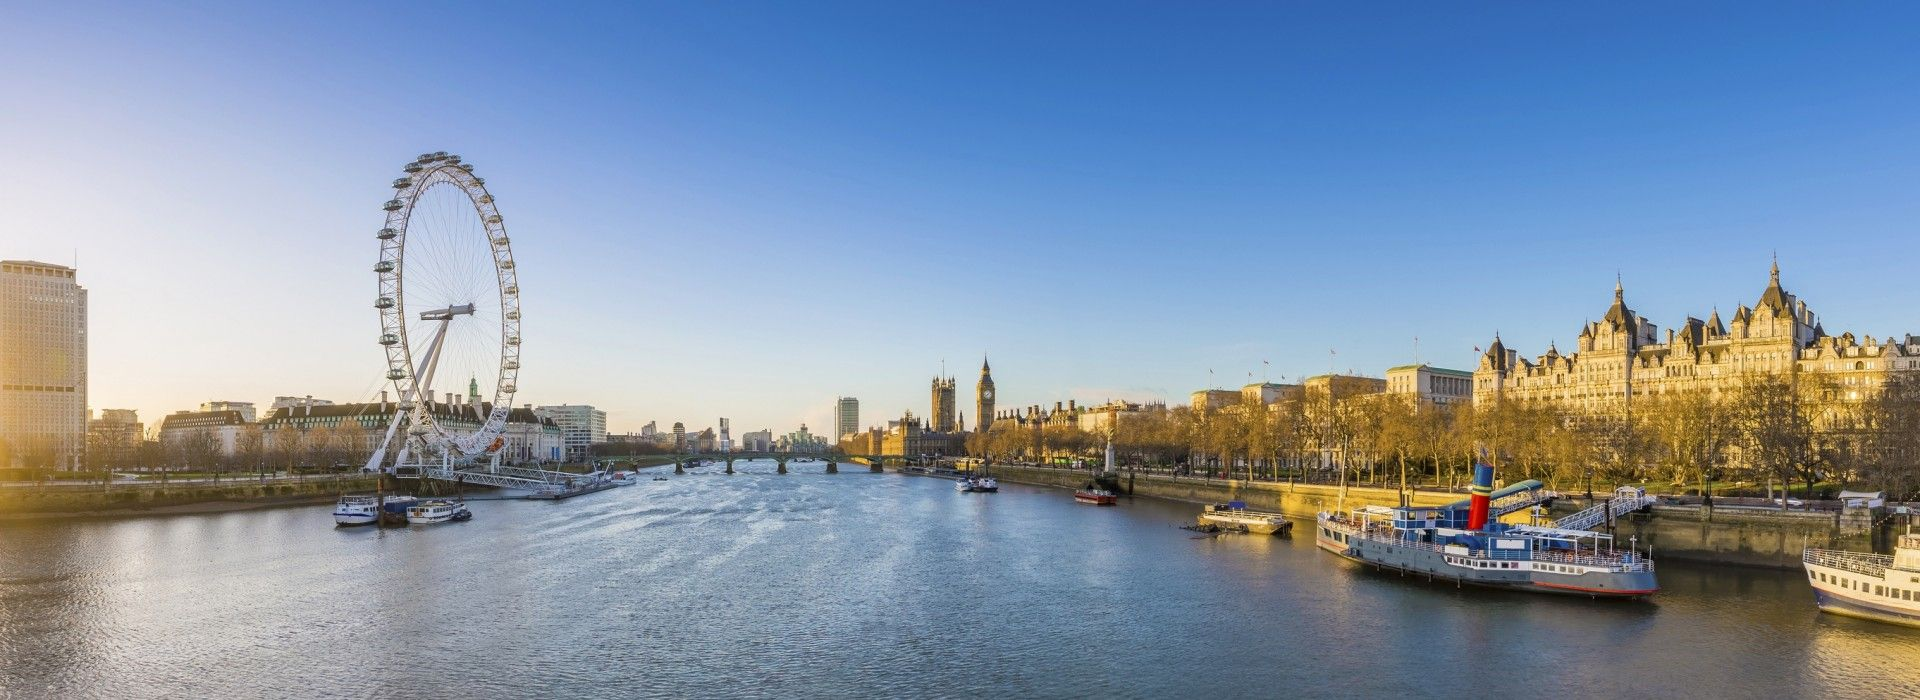 Travelling London - Tours and Trips in London